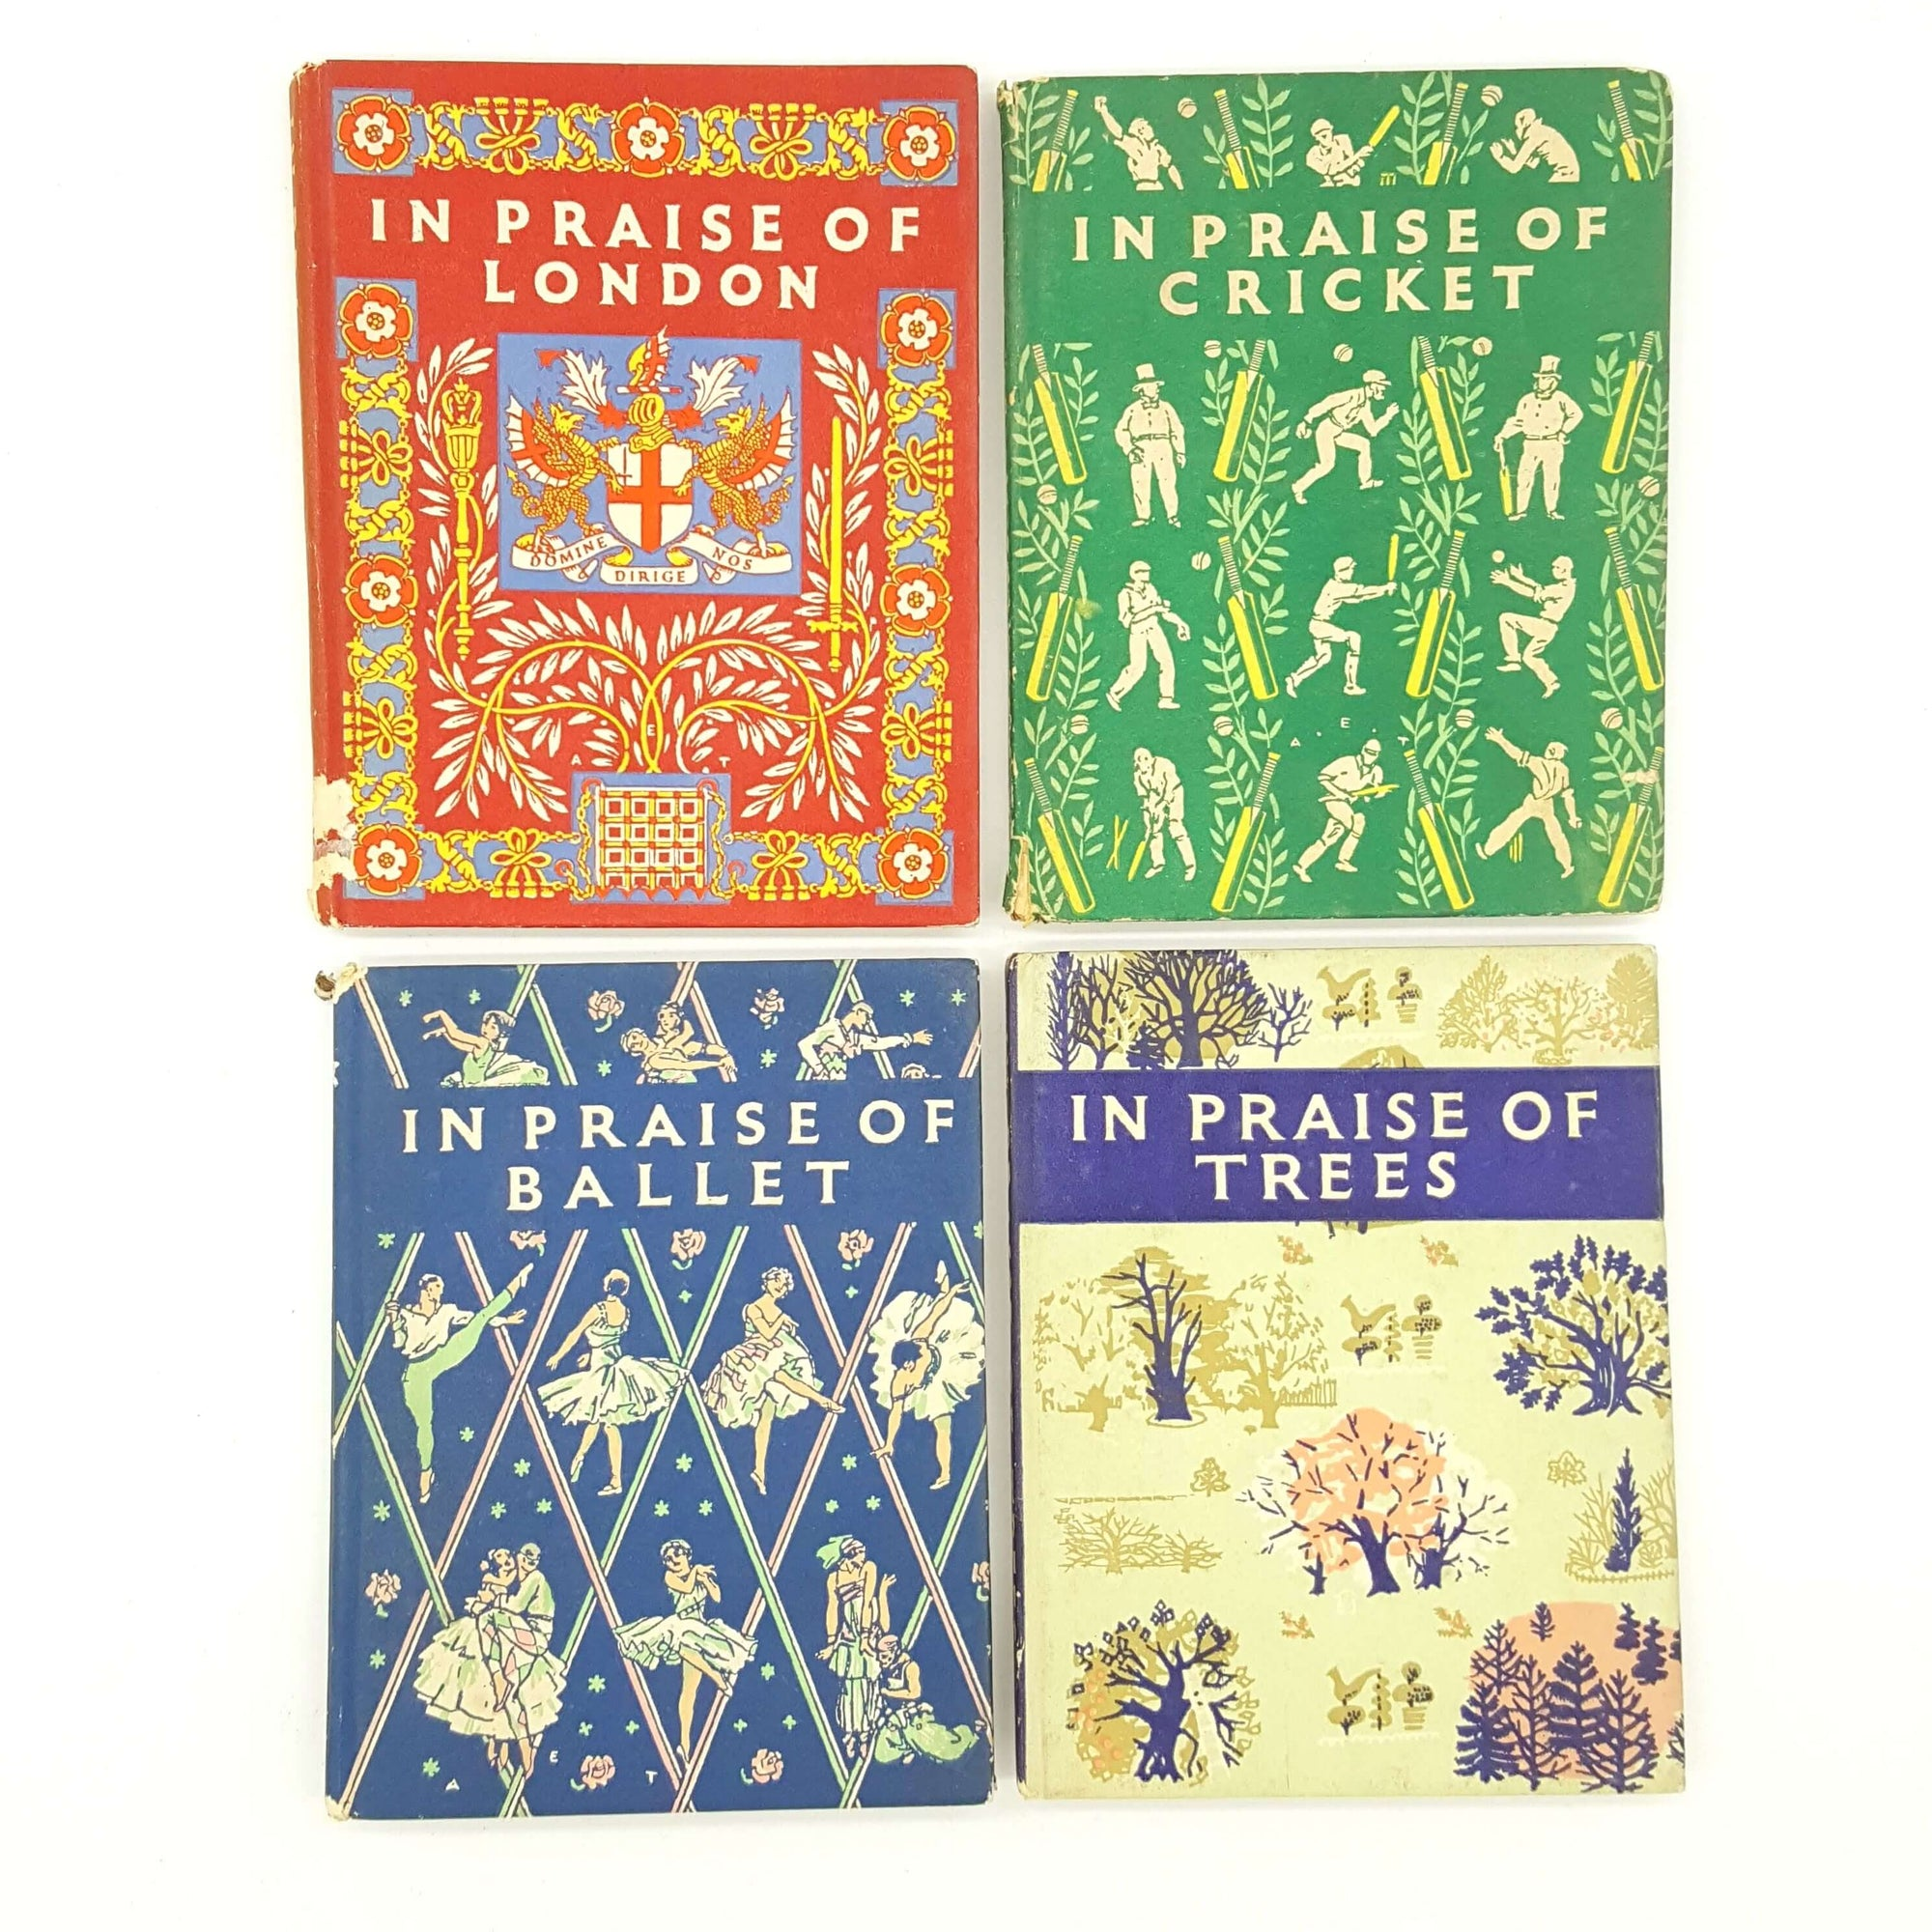 In Praise Of Ballet, Trees, London and Cricket Collection - Miniature Books Country House Library